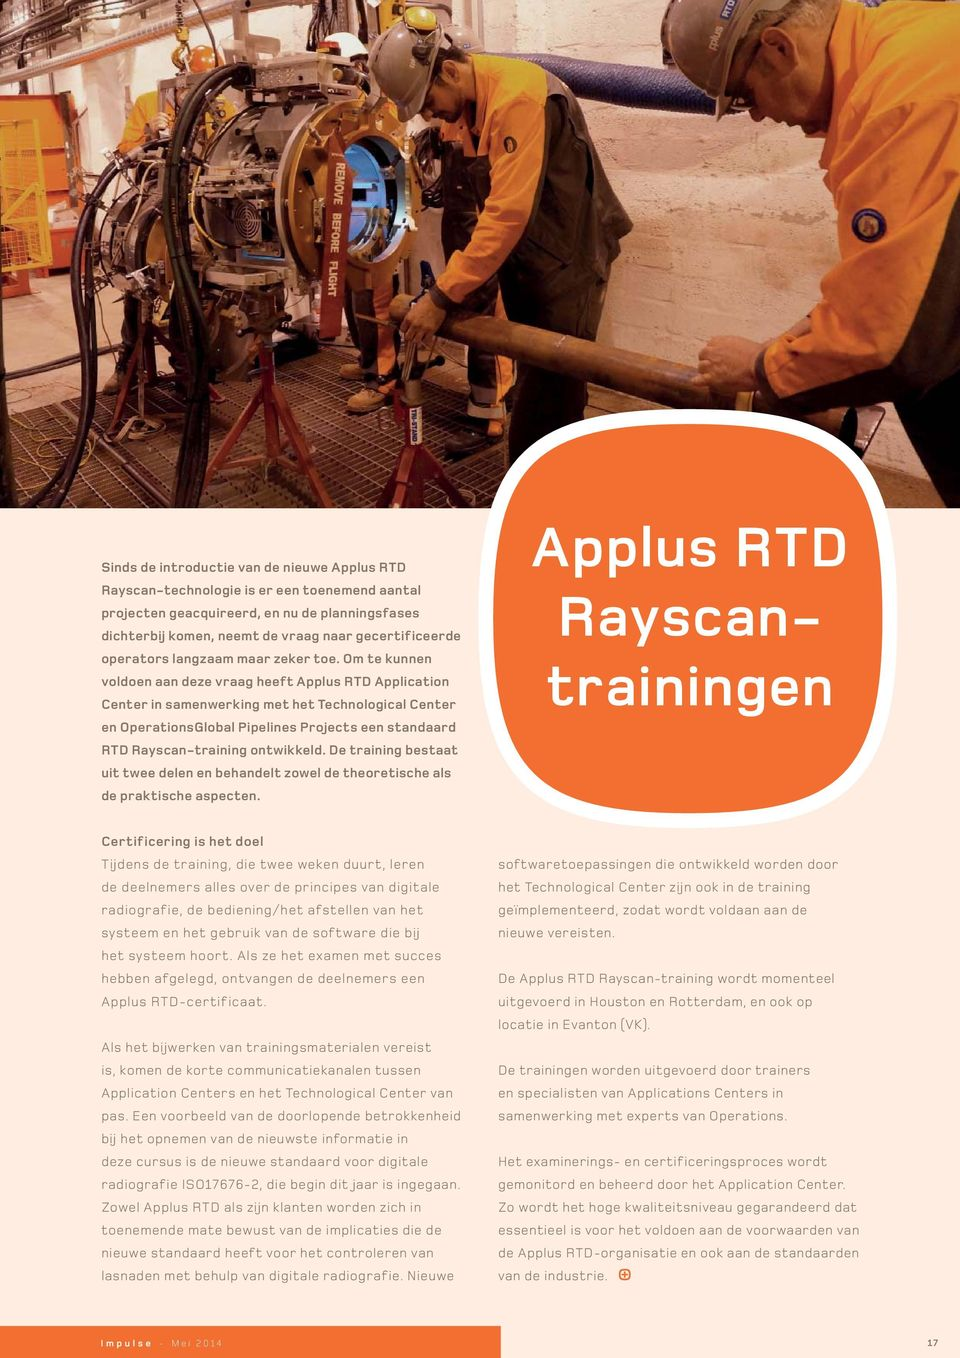 Om te kunnen voldoen aan deze vraag heeft Applus RTD Application Center in samenwerking met het Technological Center en OperationsGlobal Pipelines Projects een standaard RTD Rayscan-training